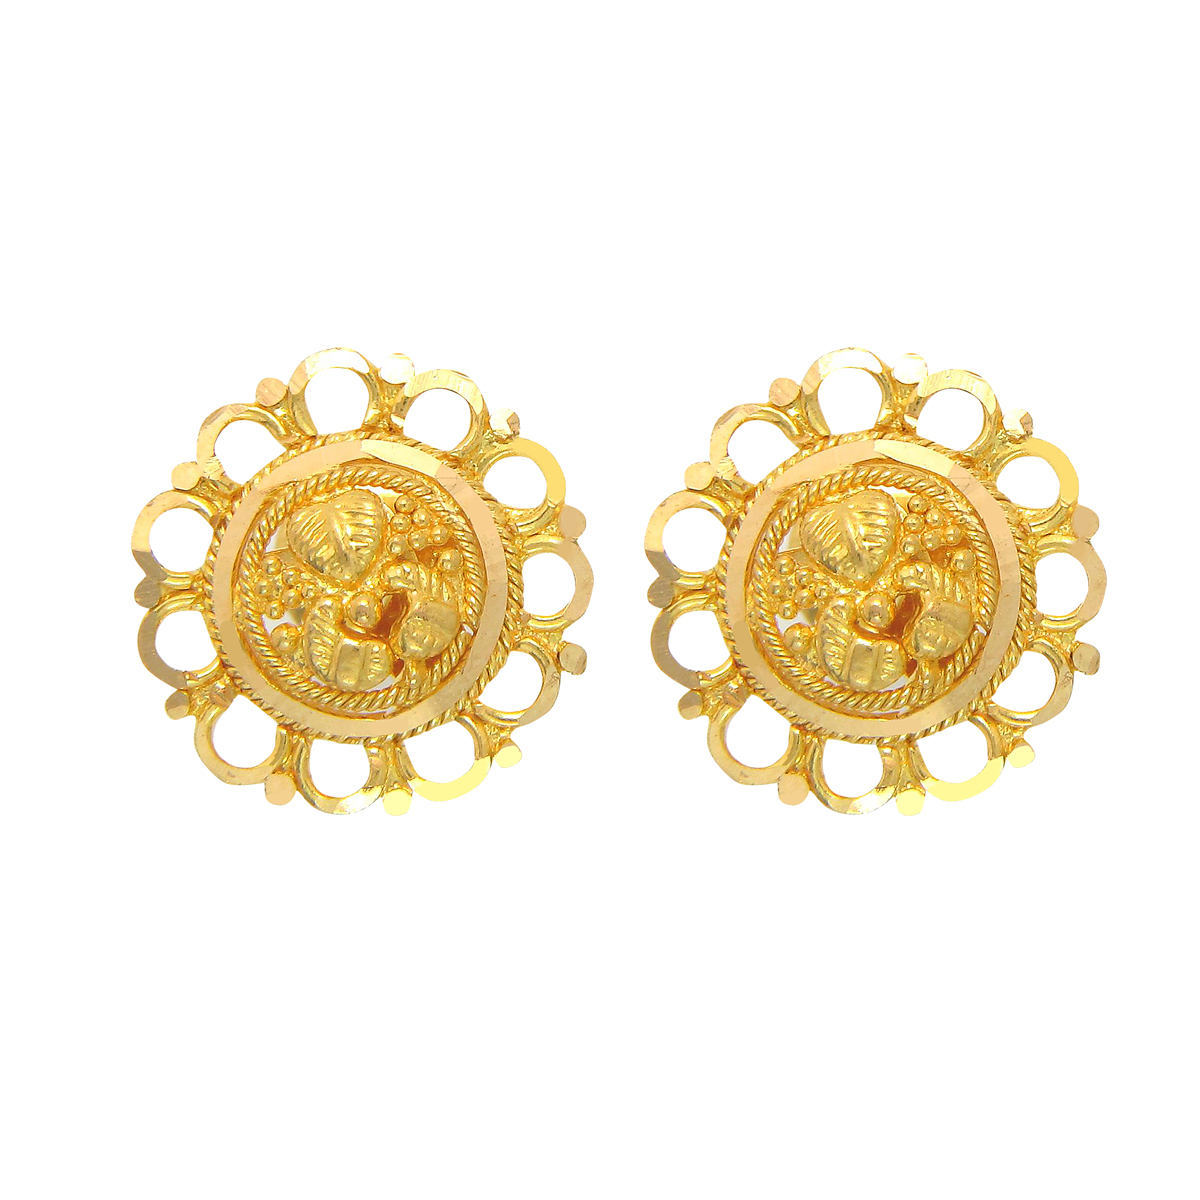 Popley 22Kt Gold Bandhan Earring